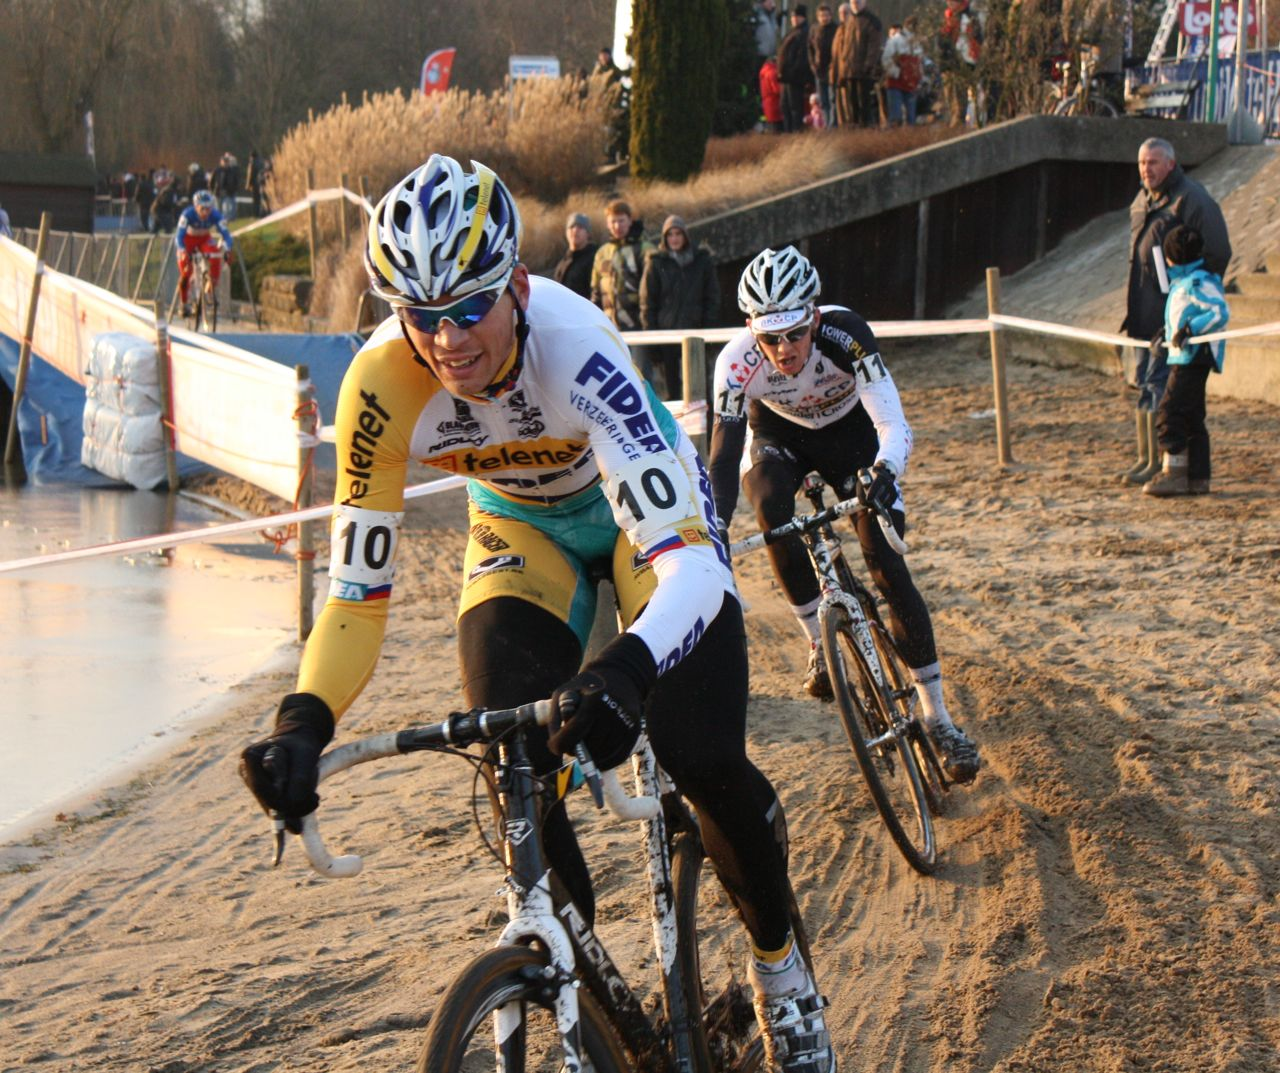 Petr Dlask leads Dieter Vanthourenhout as Mourey chases back into the race - Sint Niklaas, Belgium, January 2, 2010.  ? Dan Seaton